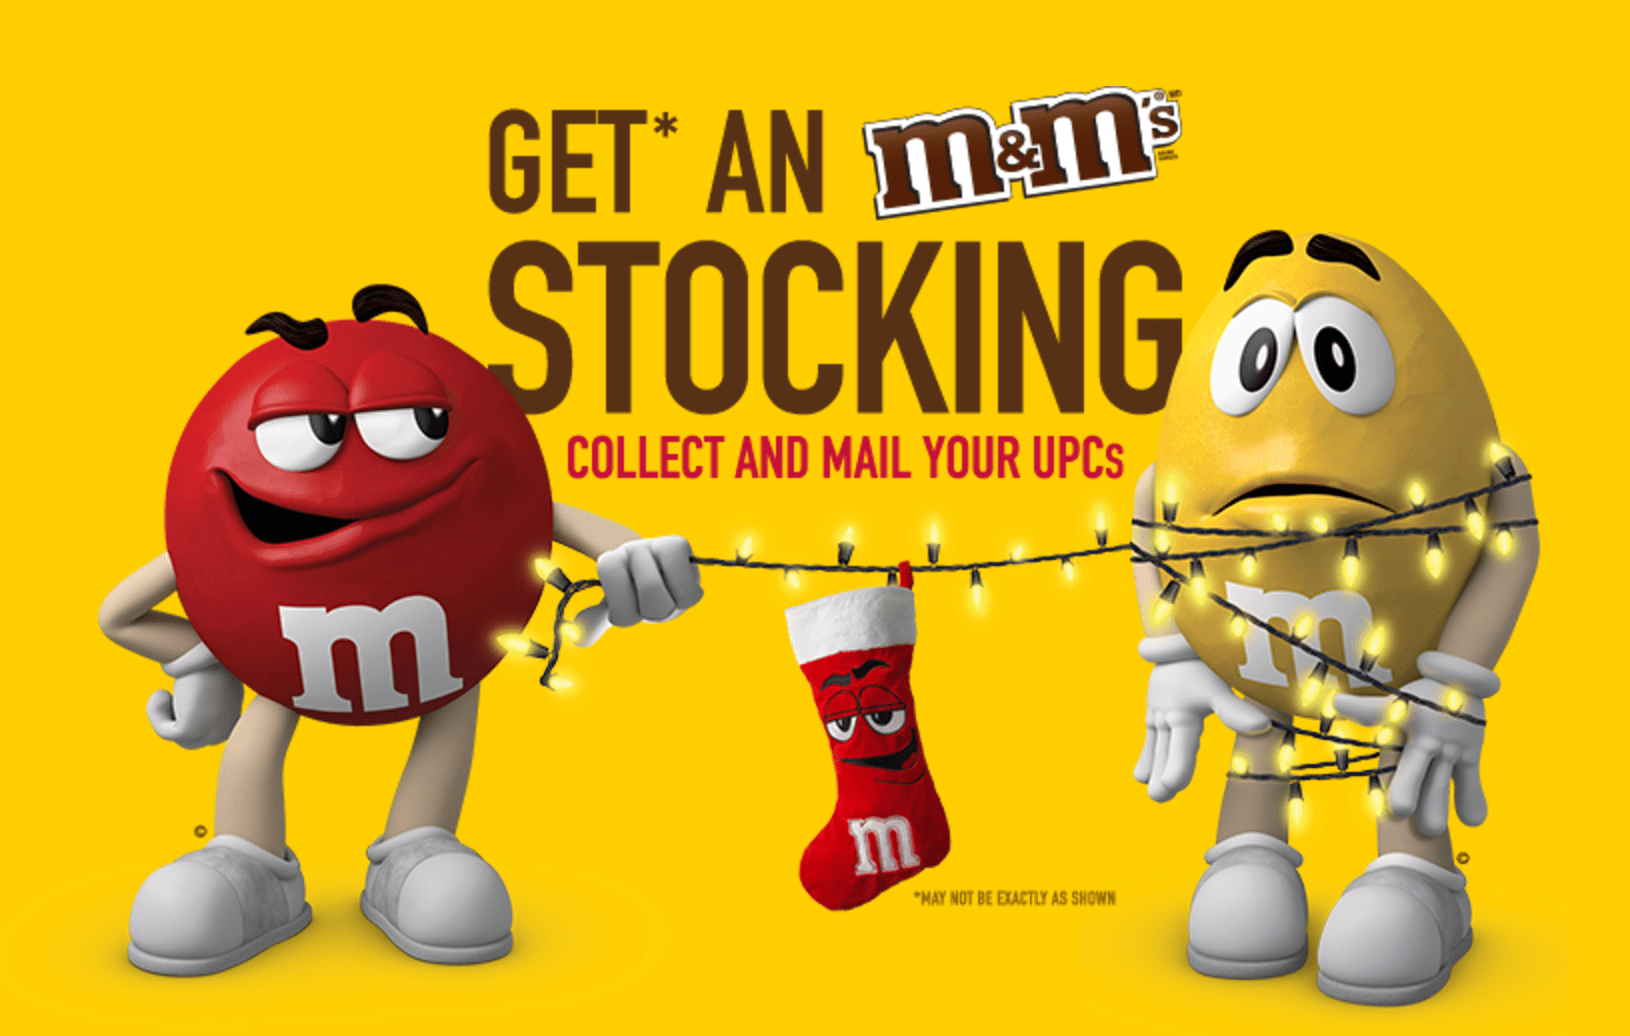 M&M's Canada Deal: Get a FREE Christmas Stocking When You Mail Your UPCs!